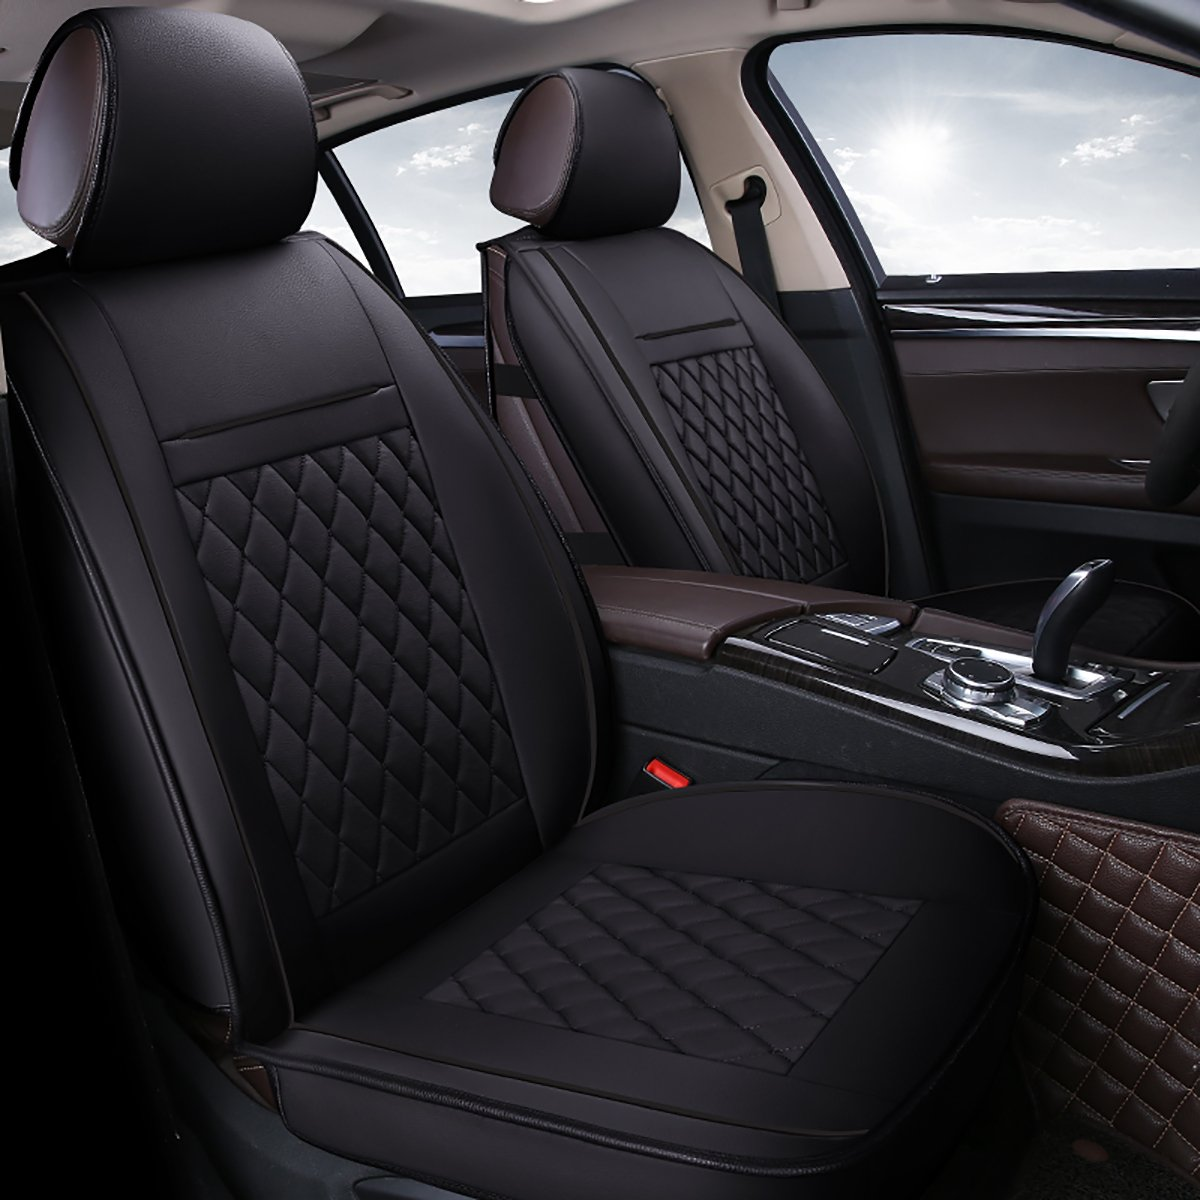 INCH EMPIRE Easy to Clean PU Leather Car Seat Cushions 5 Seats Full Set - Anti-Slip Suede Backing Universal Fit Covers Adjustable Bench for 95% Types of Cars(Black Grid)